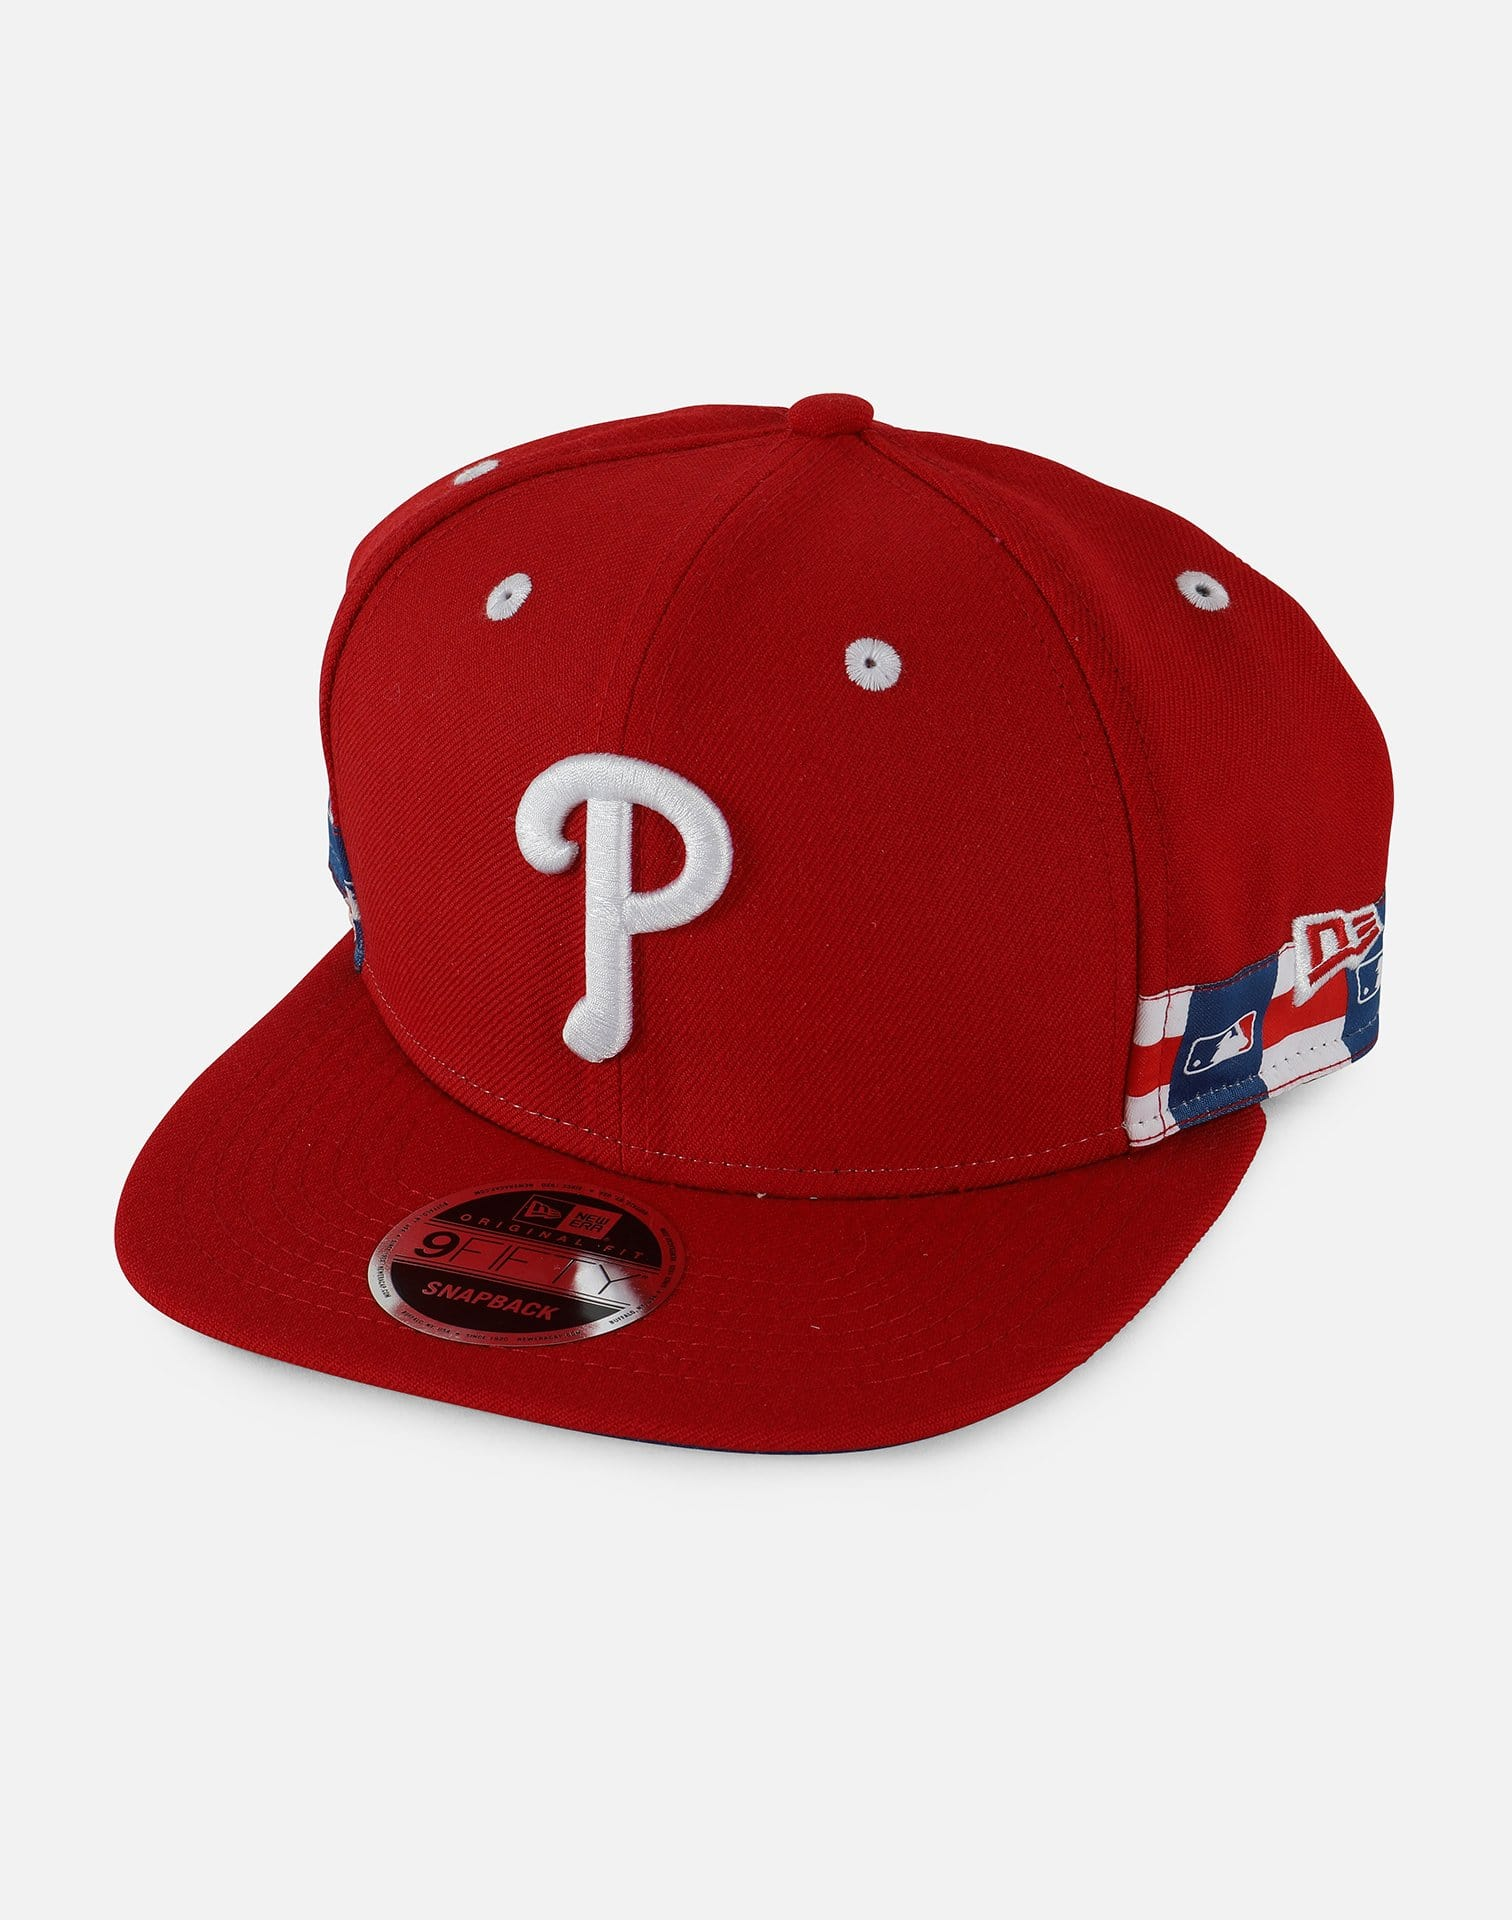 New Era Exclusive Customs MLB Philadelphia Phillies 018 Snapback Hat